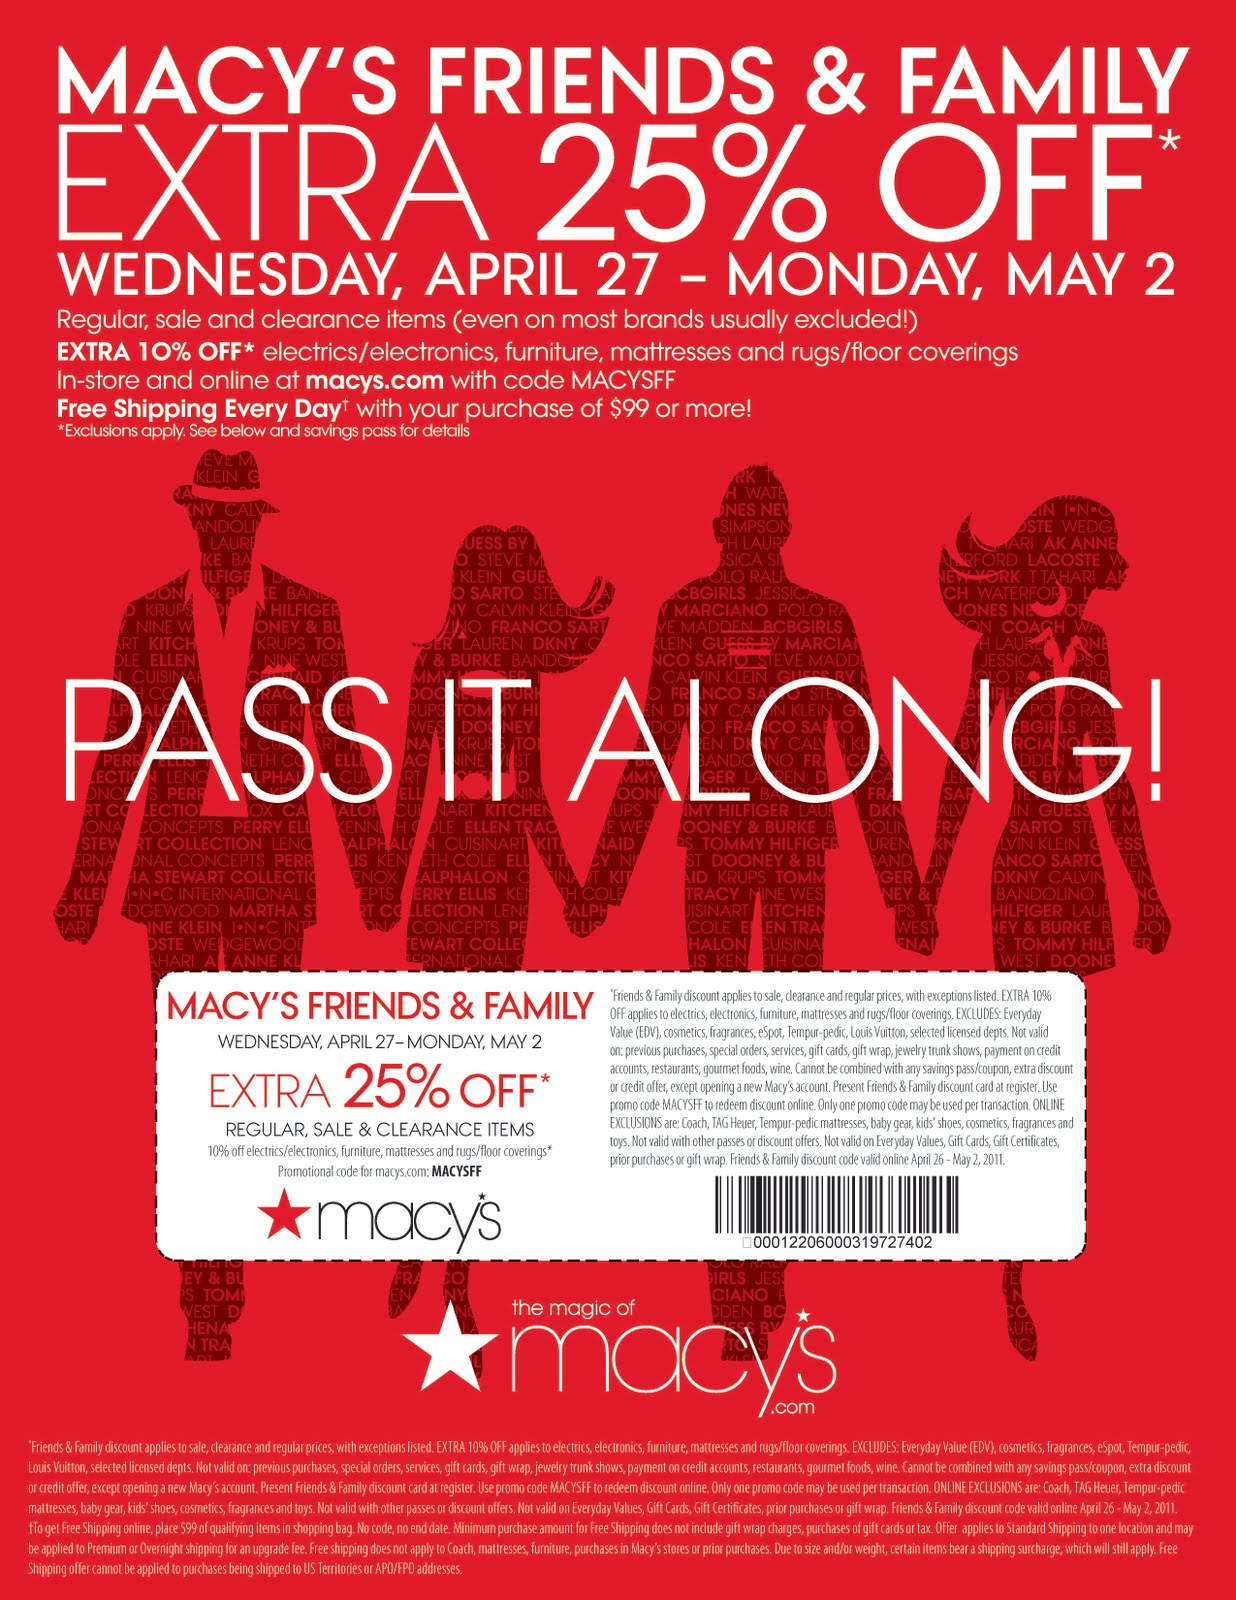 Macy's, originally R. H. Macy & Co., is a mid-range to upscale chain of department stores owned by American multinational corporation Macy's, Inc. It is one of two divisions owned by the company, with the other being the upscale Bloomingdale's.